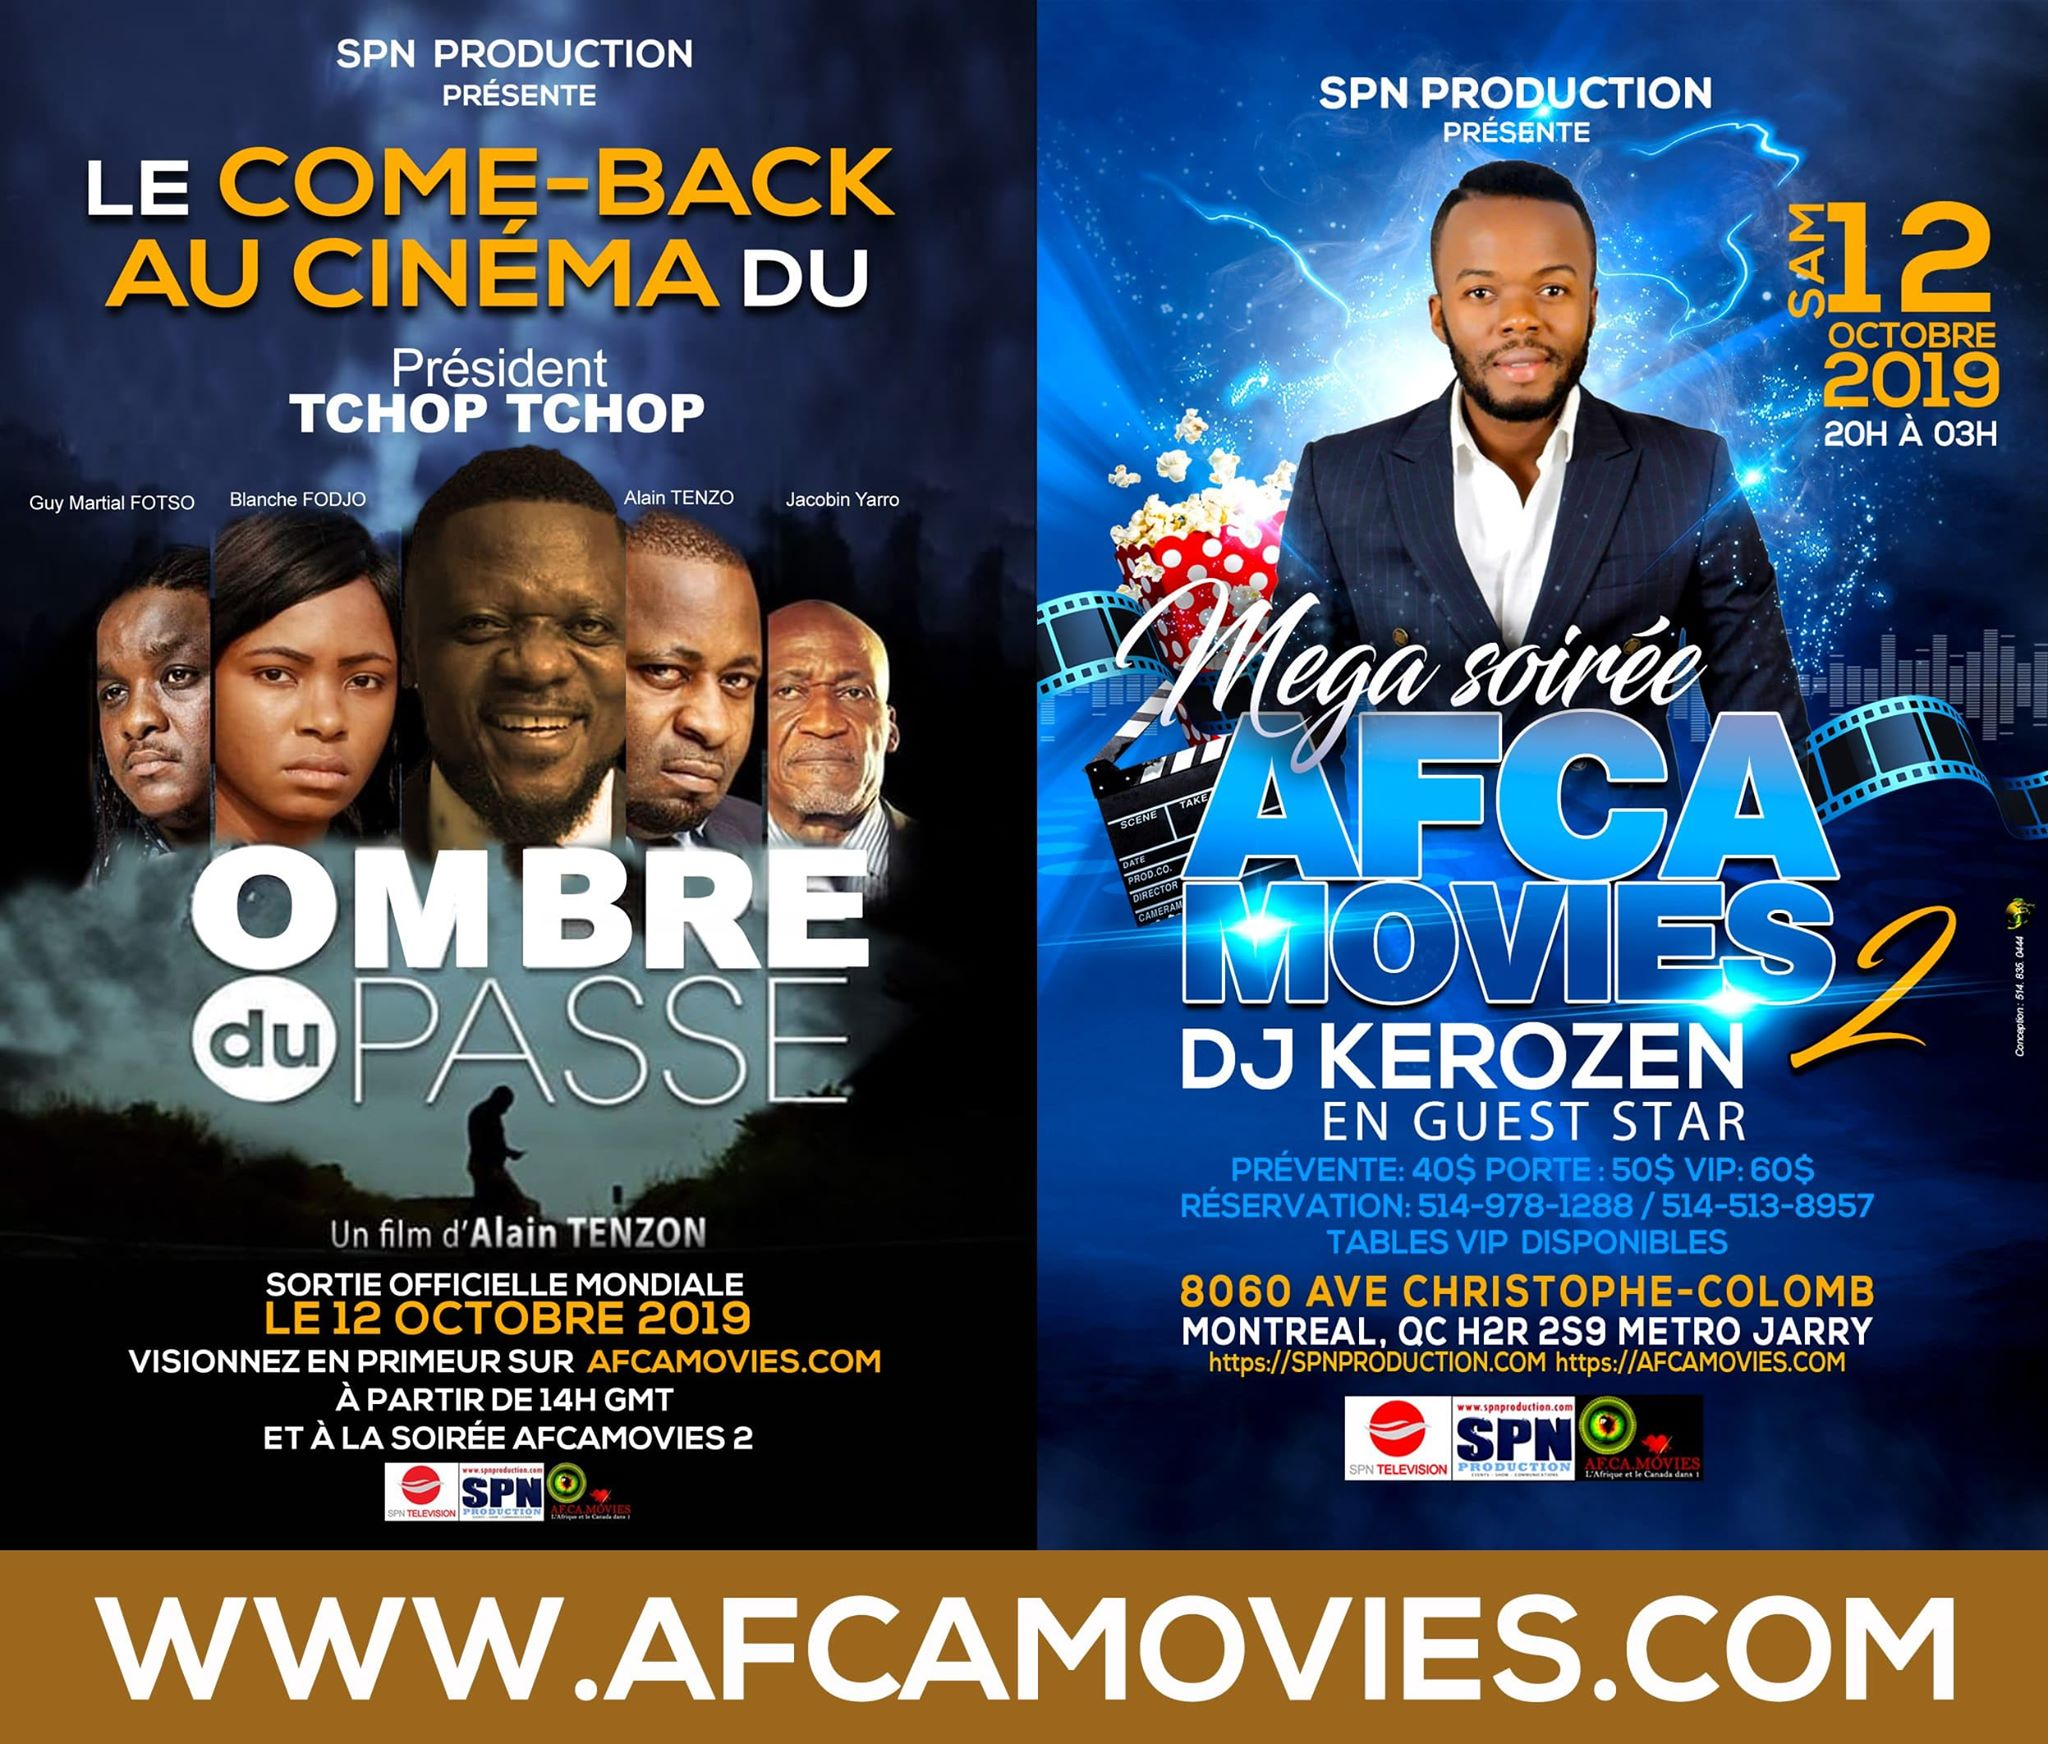 https://cdn.237actu.com/come-back-au-cinema-du-president-tchop-tchop